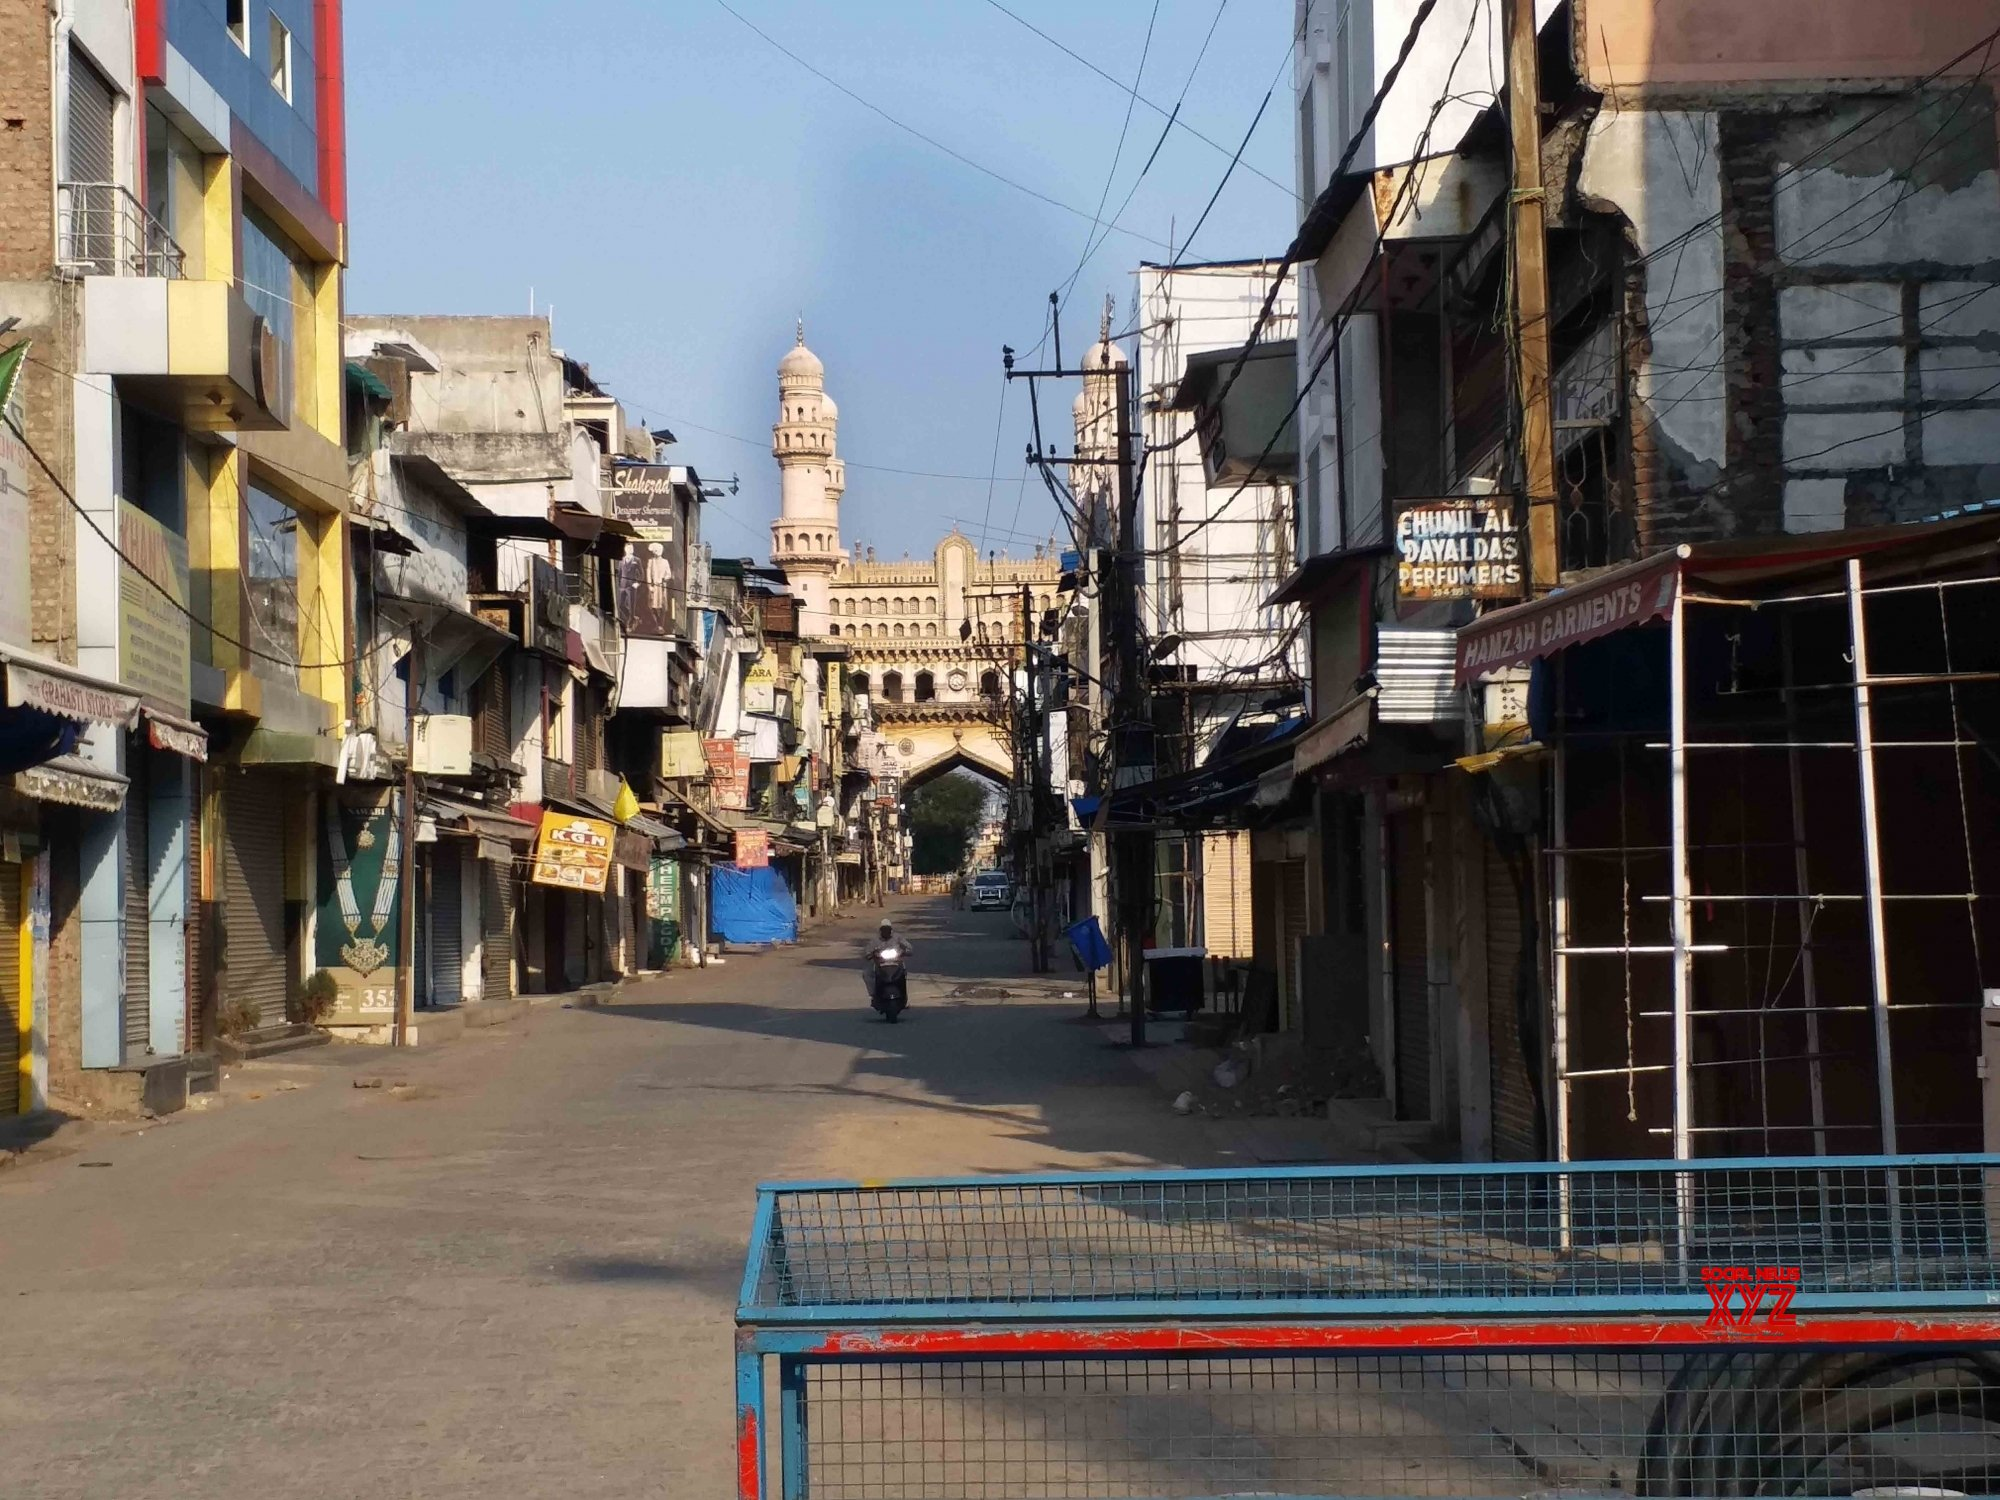 Hyderabad: City comes to a standstill during 21 - day lockdown #Gallery